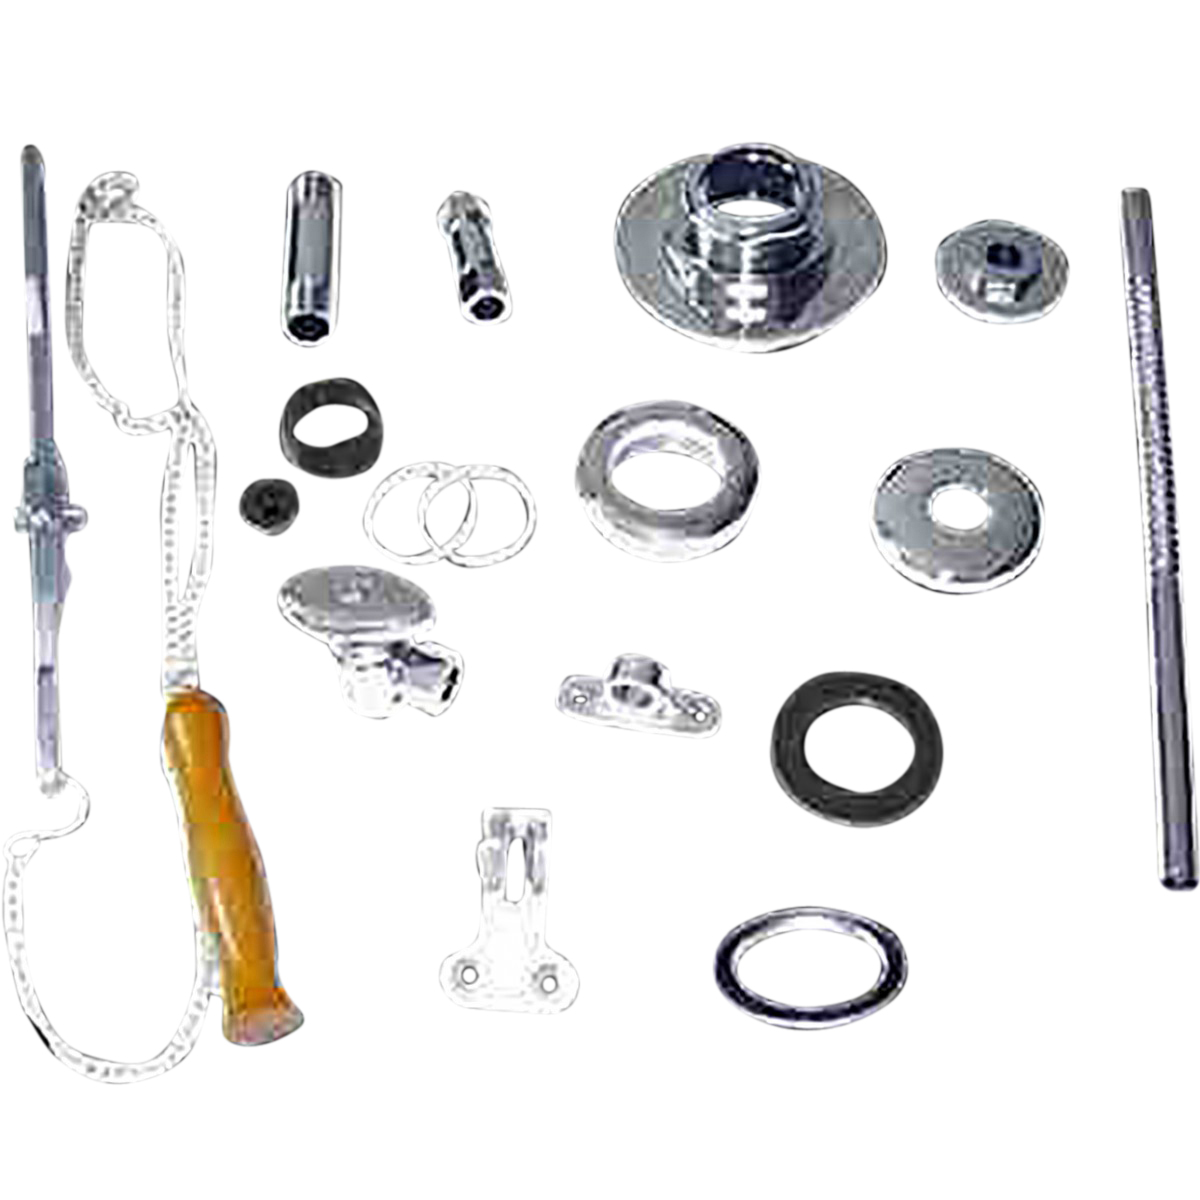 Toilet Part Chrome Part for High Tank Toilets | Renovator's Supply